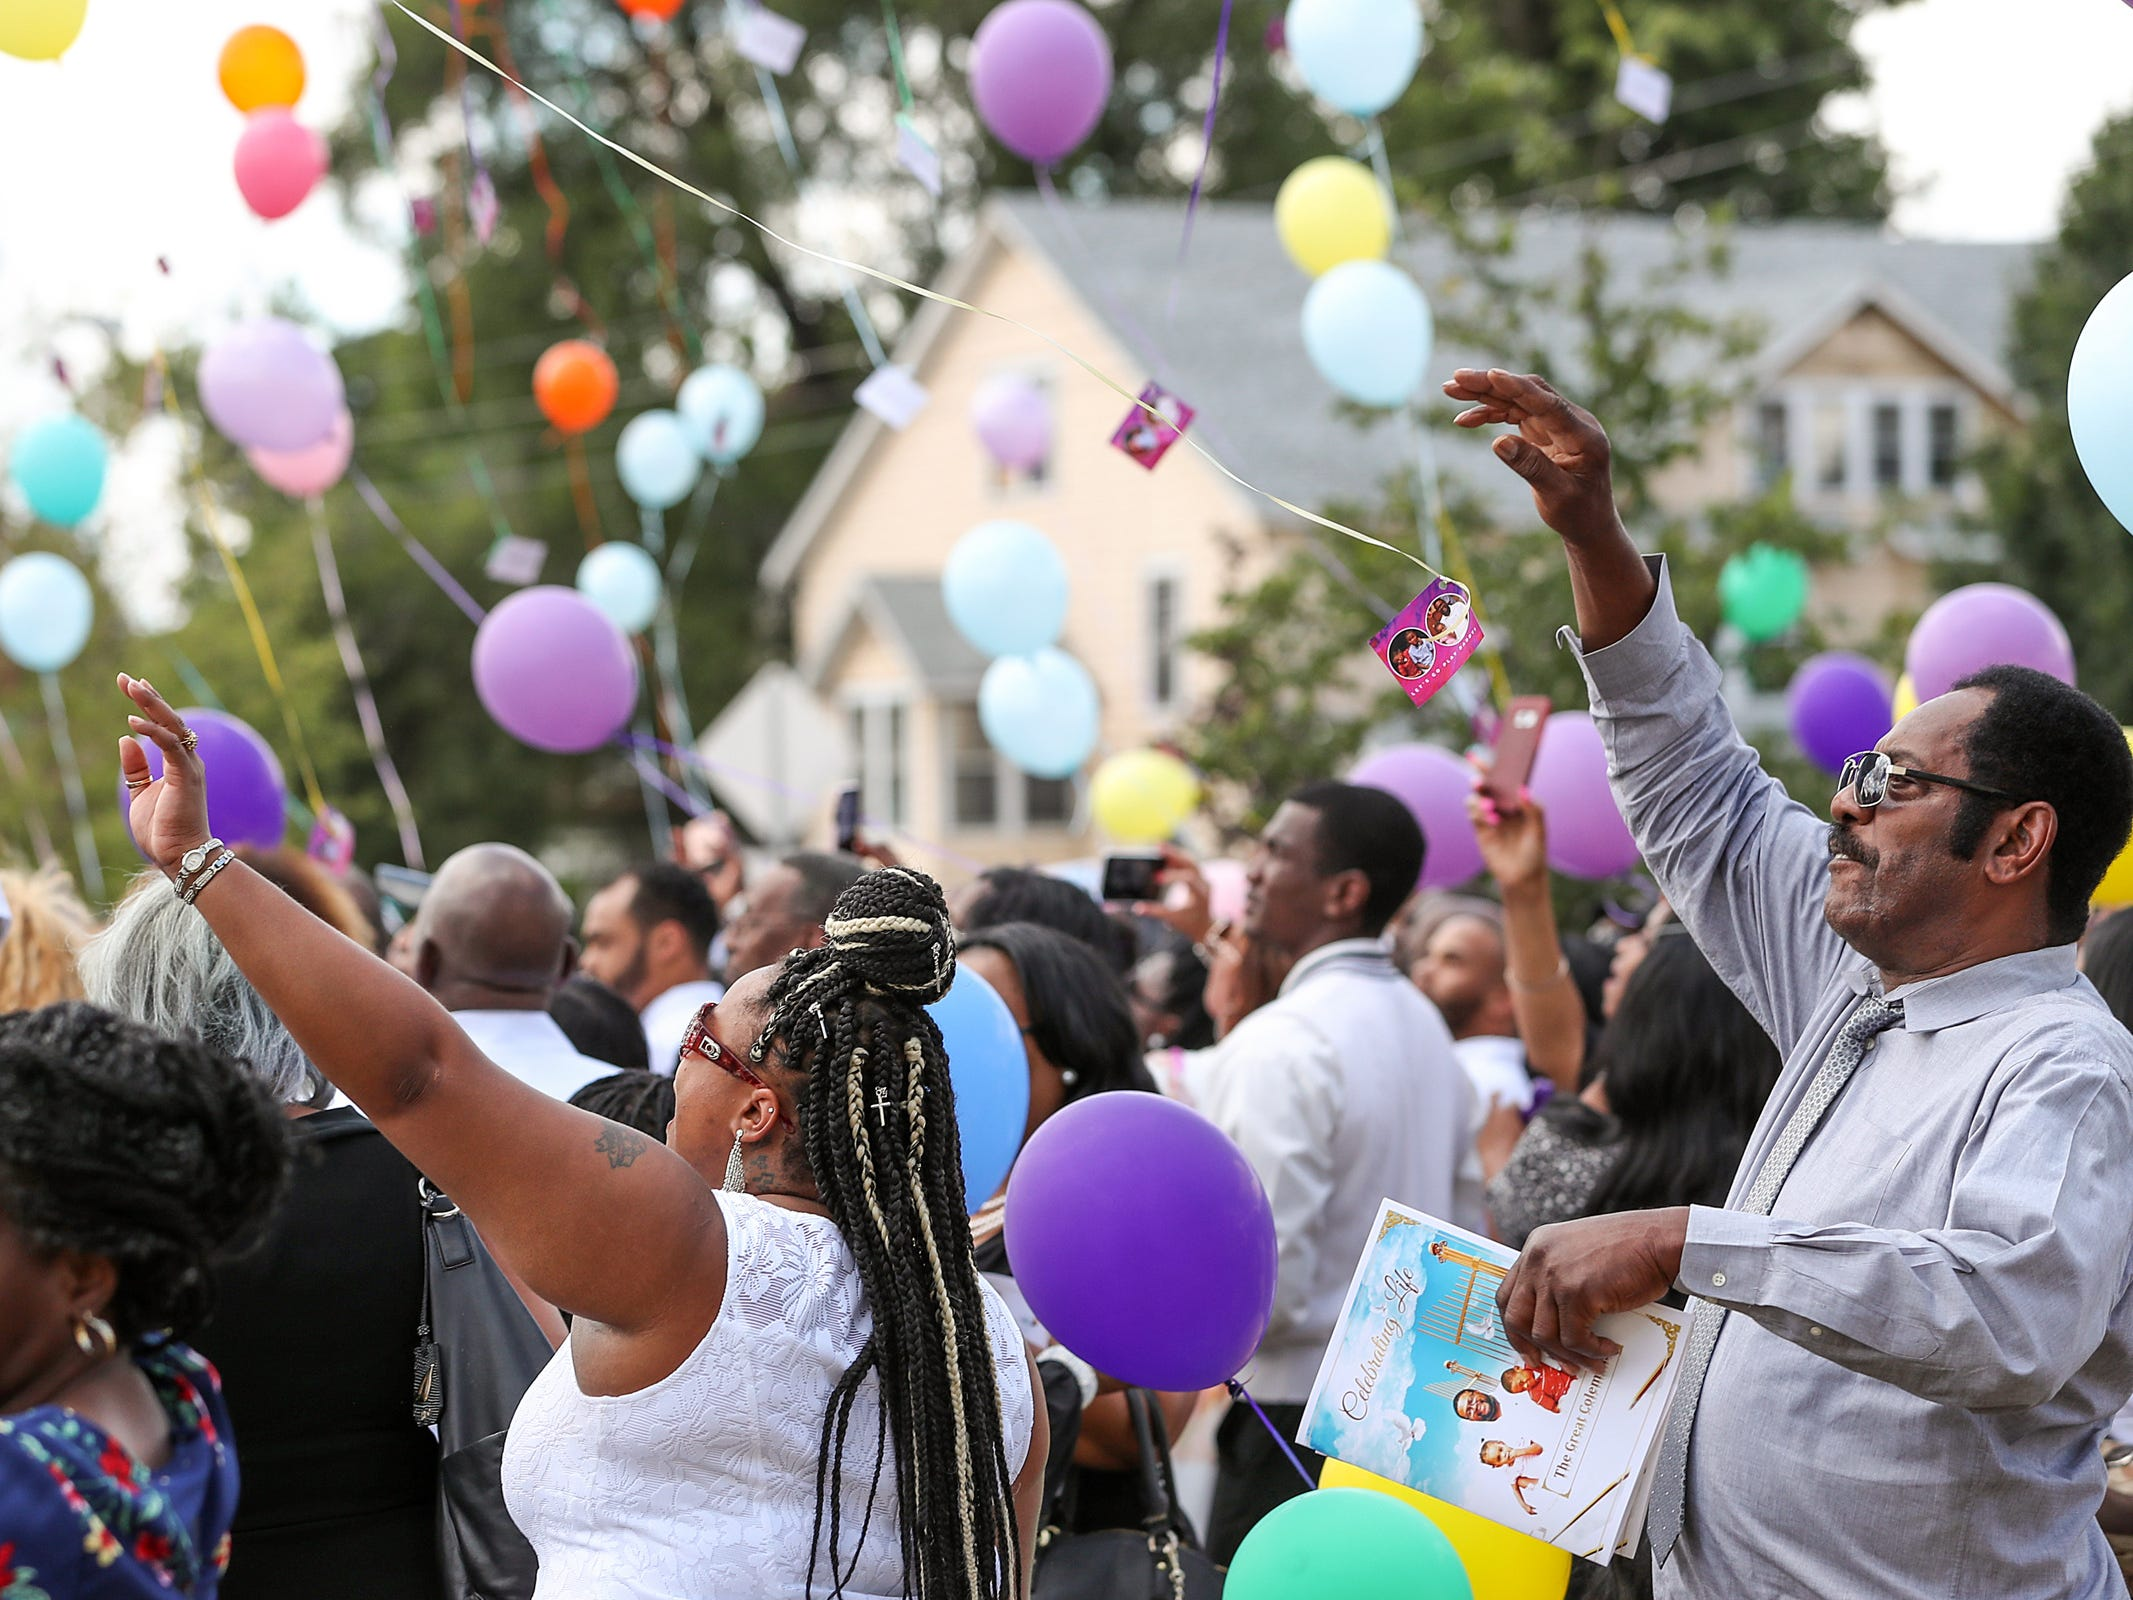 Family and friends participate in a balloon release after the homegoing service of Glenn Coleman, 40, Reece, 9, Evan, 7, and Arya, 1, at Grace Apostolic Church in Indianapolis on Friday, July 27, 2018. Seventeen people were killed in the duck boat incident in Branson, Missouri, nine of them were members of the Coleman family.